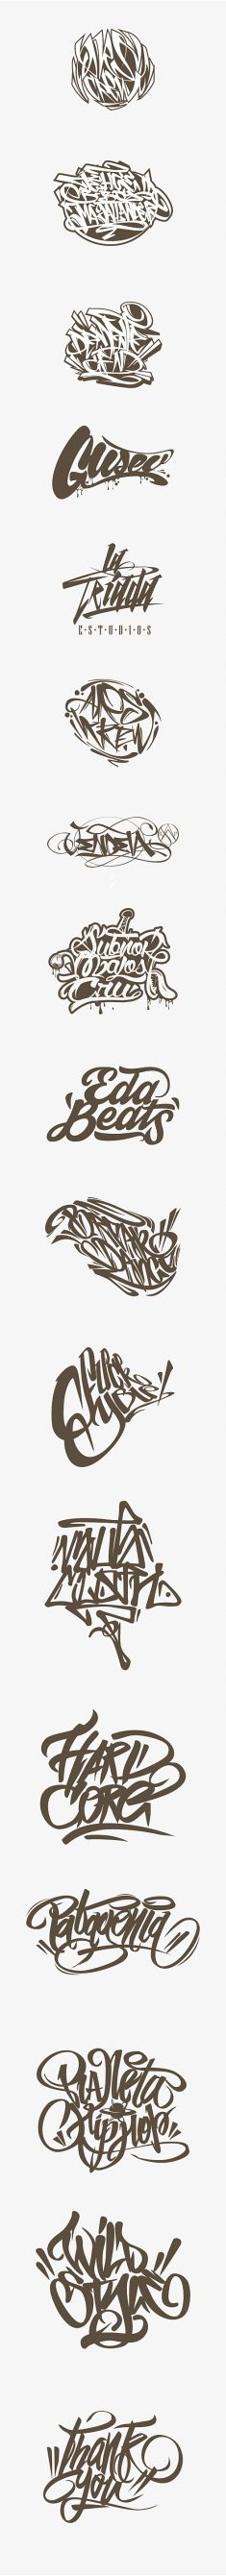 Calligraffiti – Lettering by Jorge Canicura